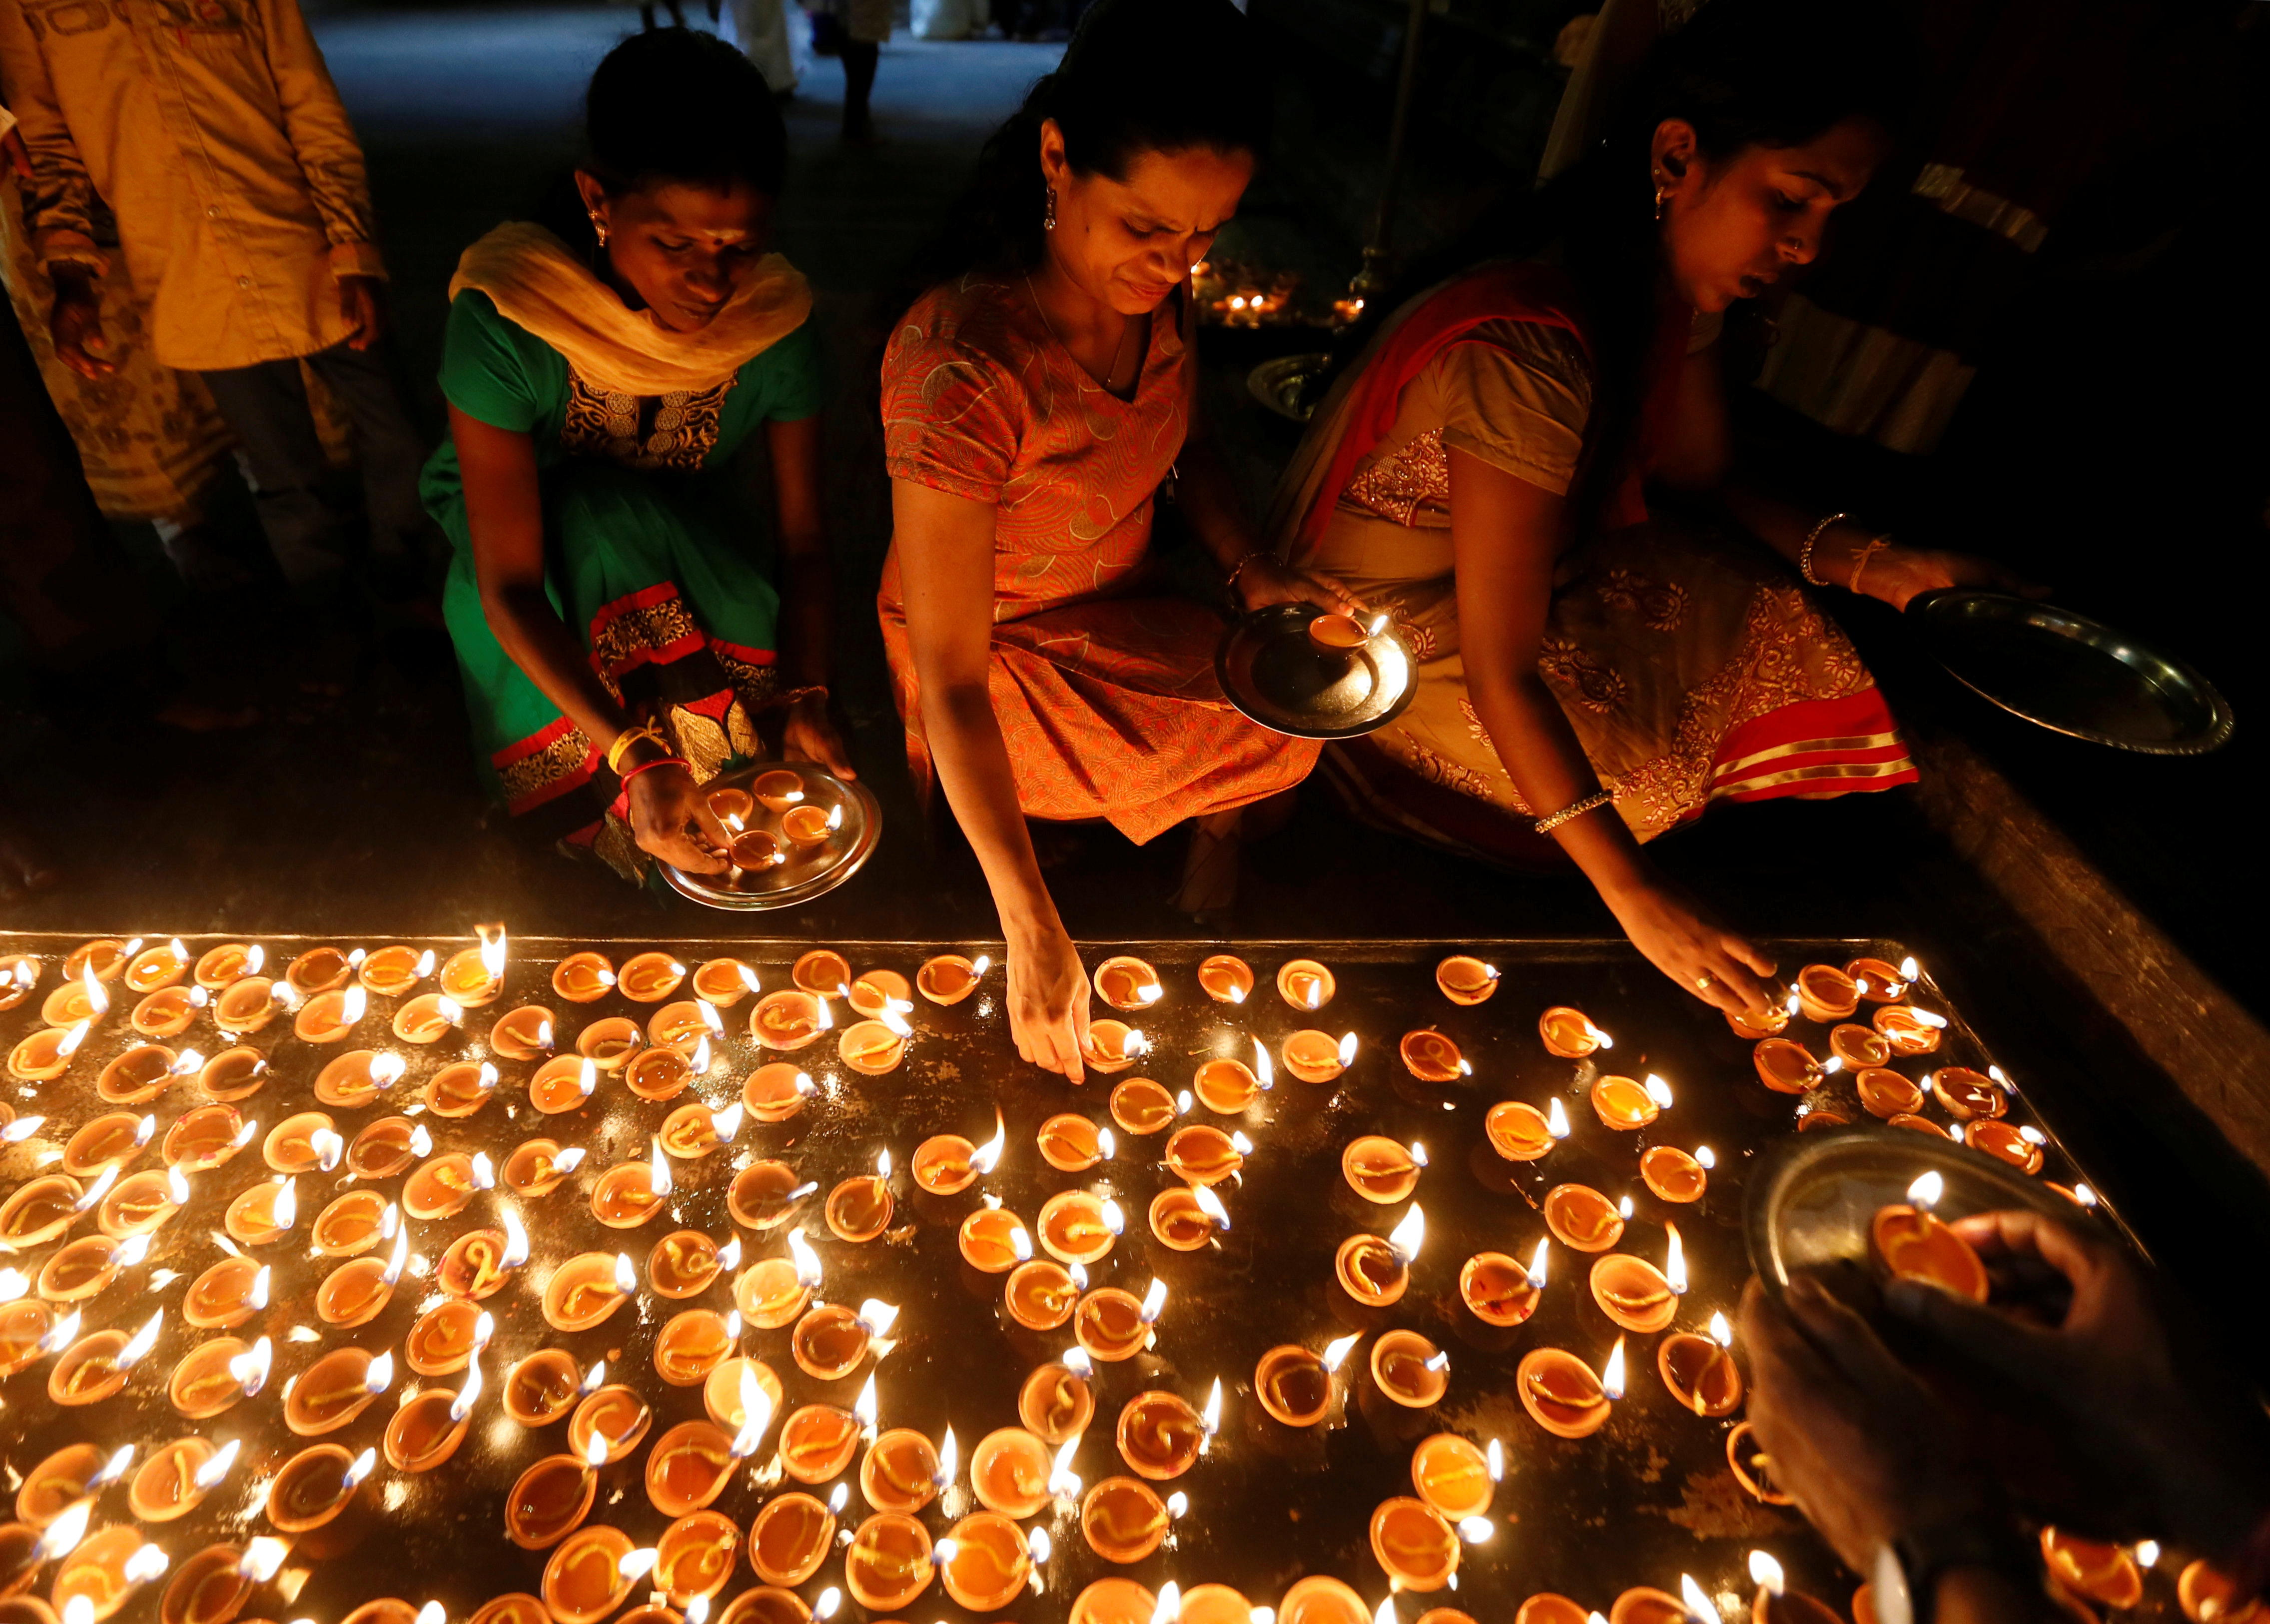 an overview of the festival of lights deepavali October 17, 2016 - the ria blog - diwali, also known as the festival of lights, is one of the most celebrated festivals in the world it is a five-day festival that starts on october 28th t.